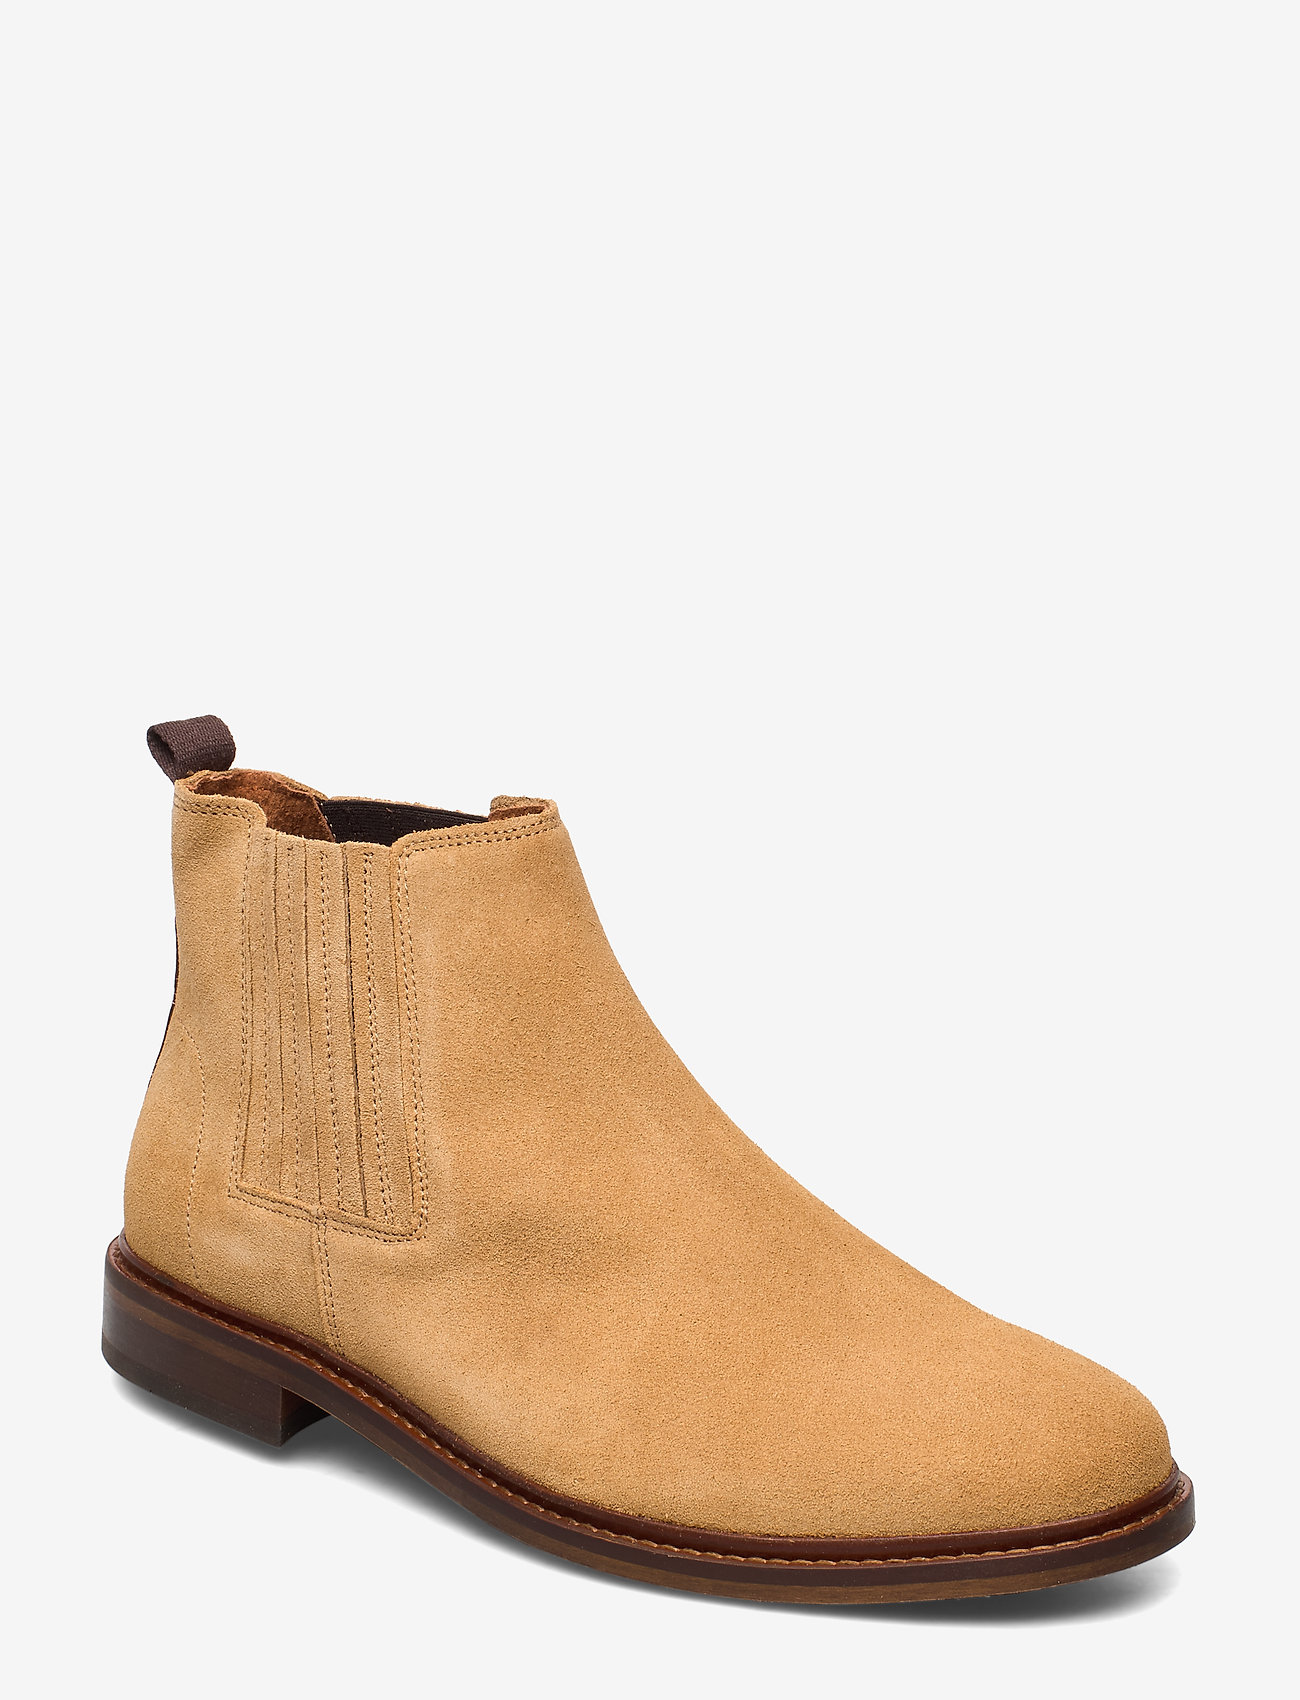 Stb-gale S (Camel) (79.98 €) - Shoe The Bear MG3Ky